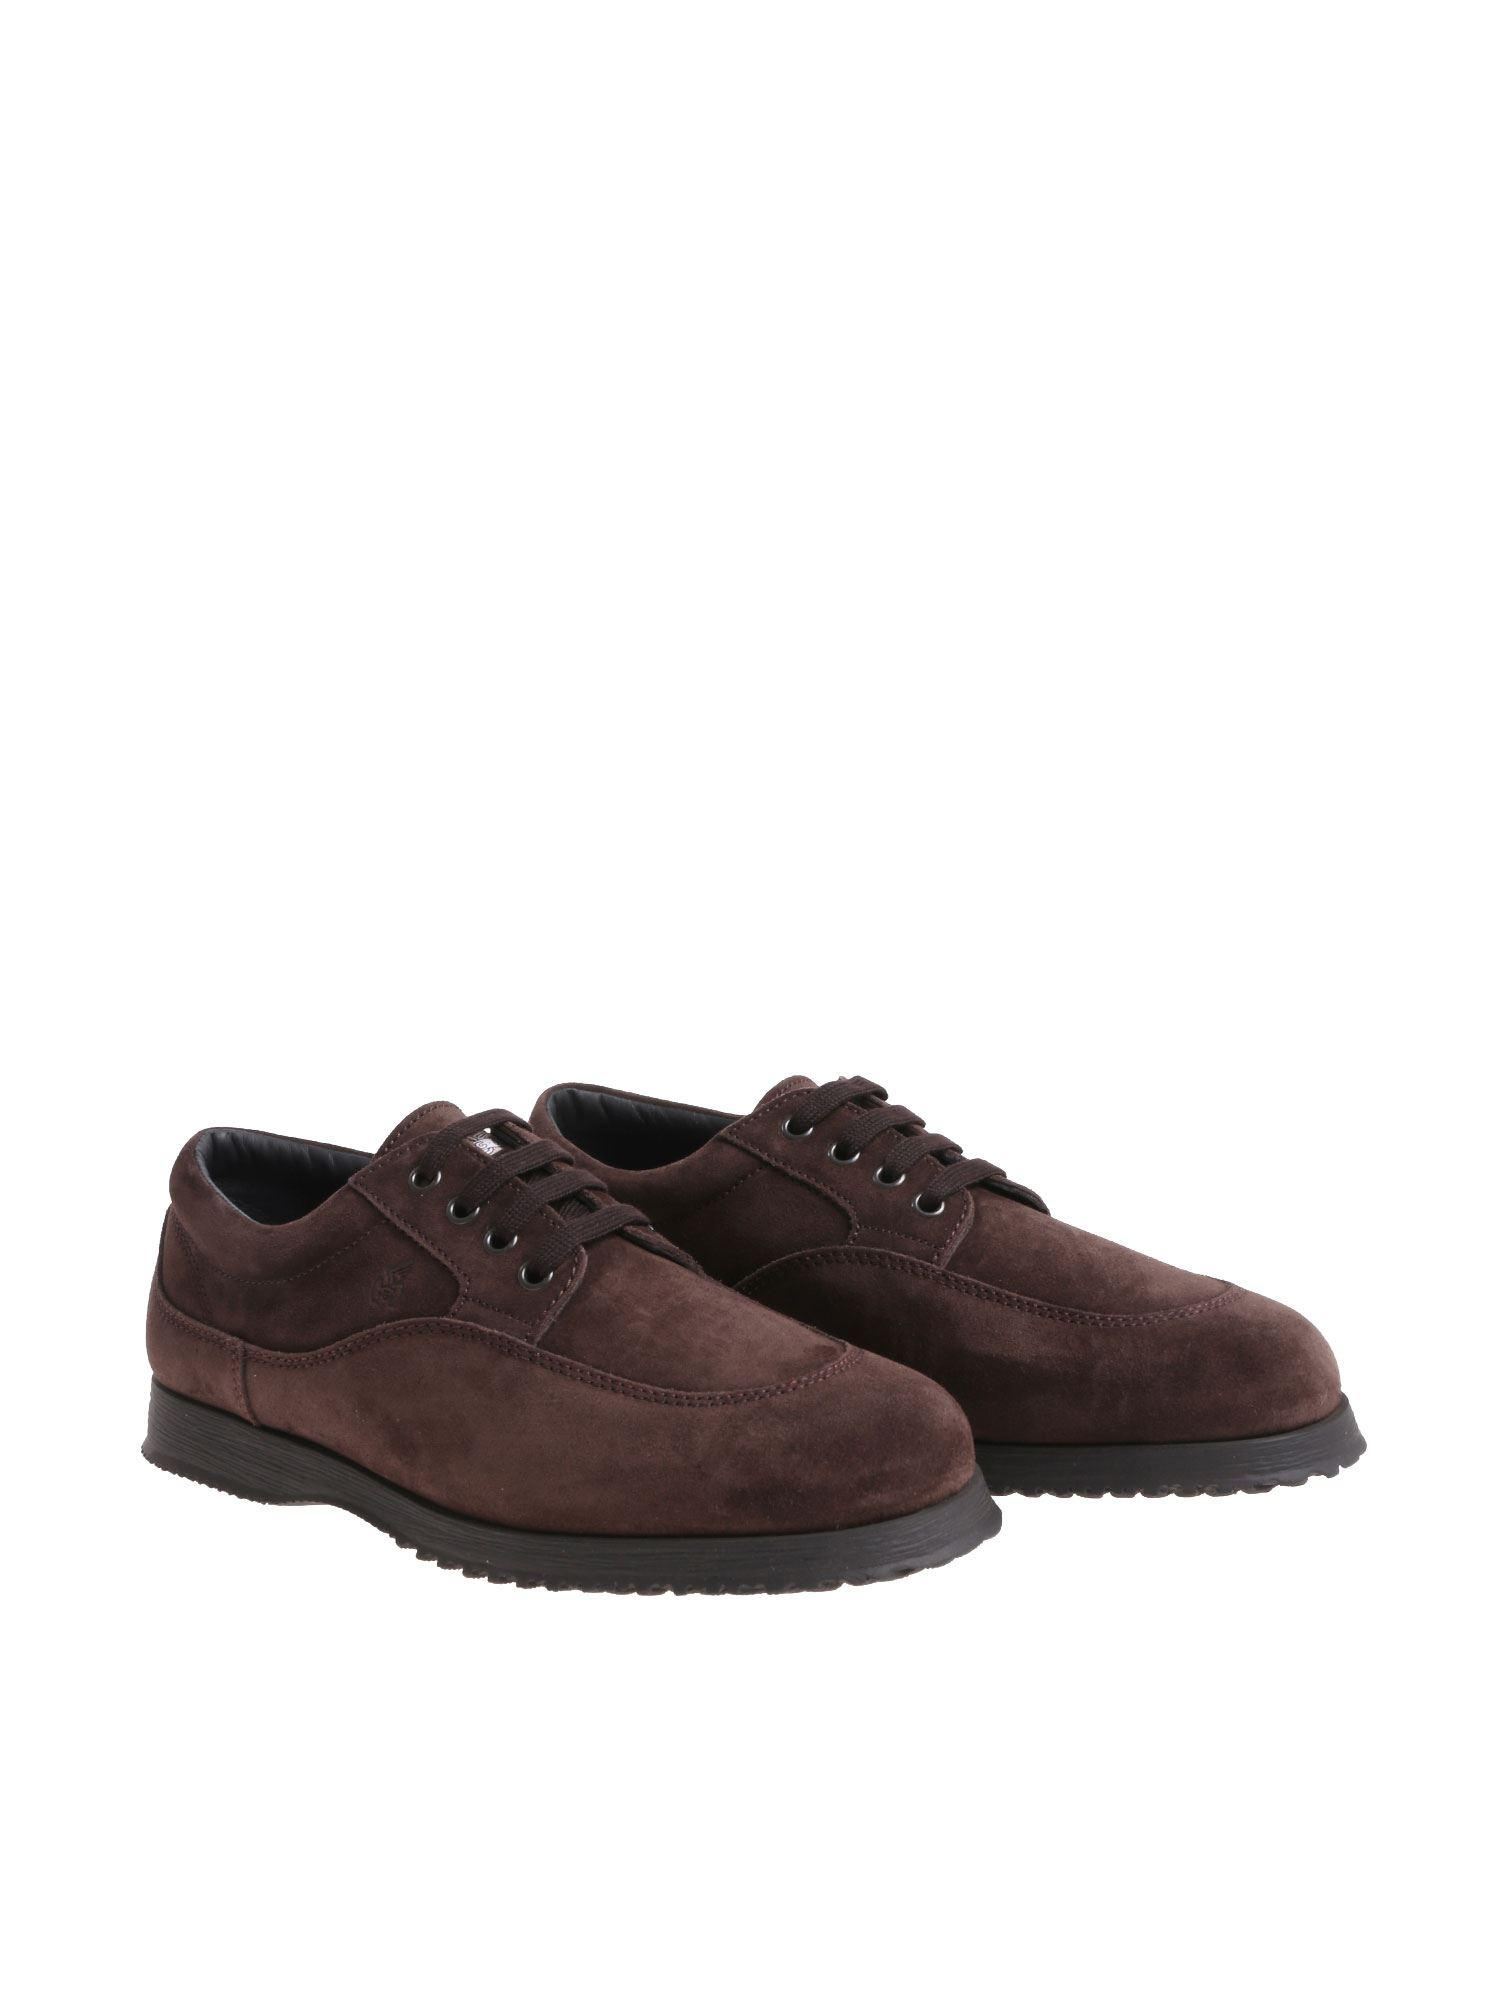 Hogan Hg0 Brown Derby Shoes in Brown for Men - Lyst e259a1ec6e0